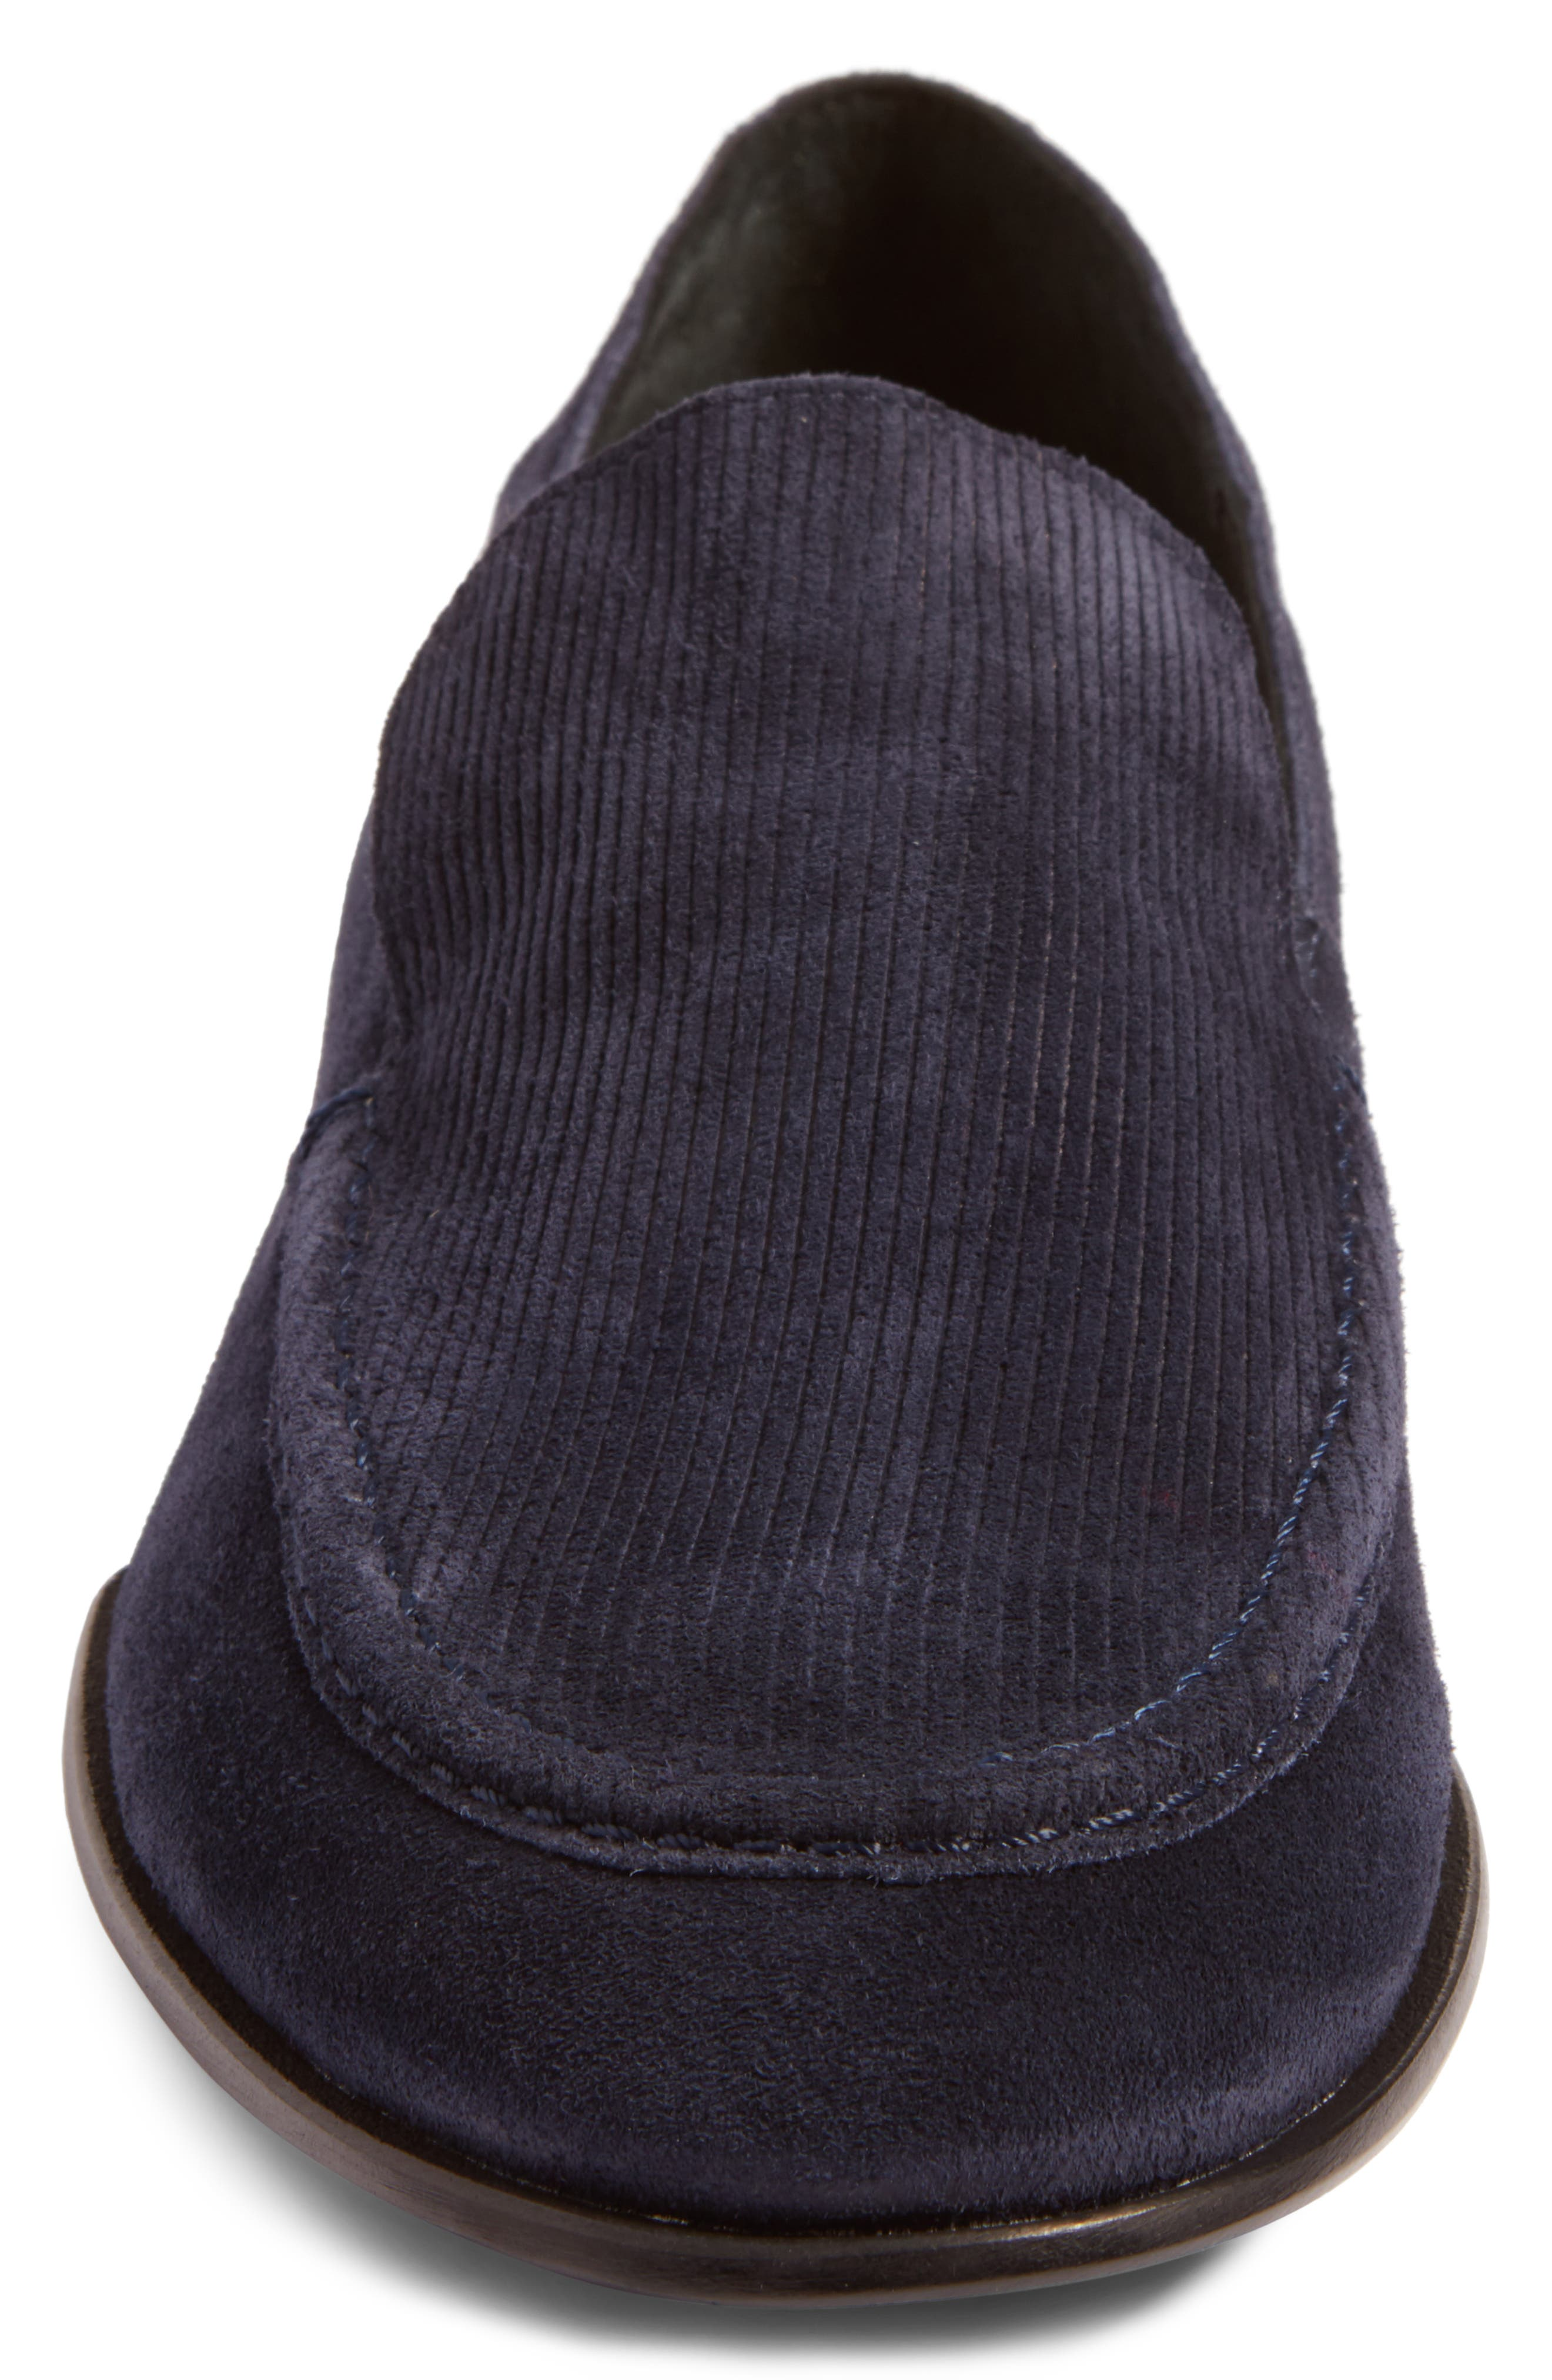 Alix Convertible Loafer,                             Alternate thumbnail 5, color,                             Navy Suede